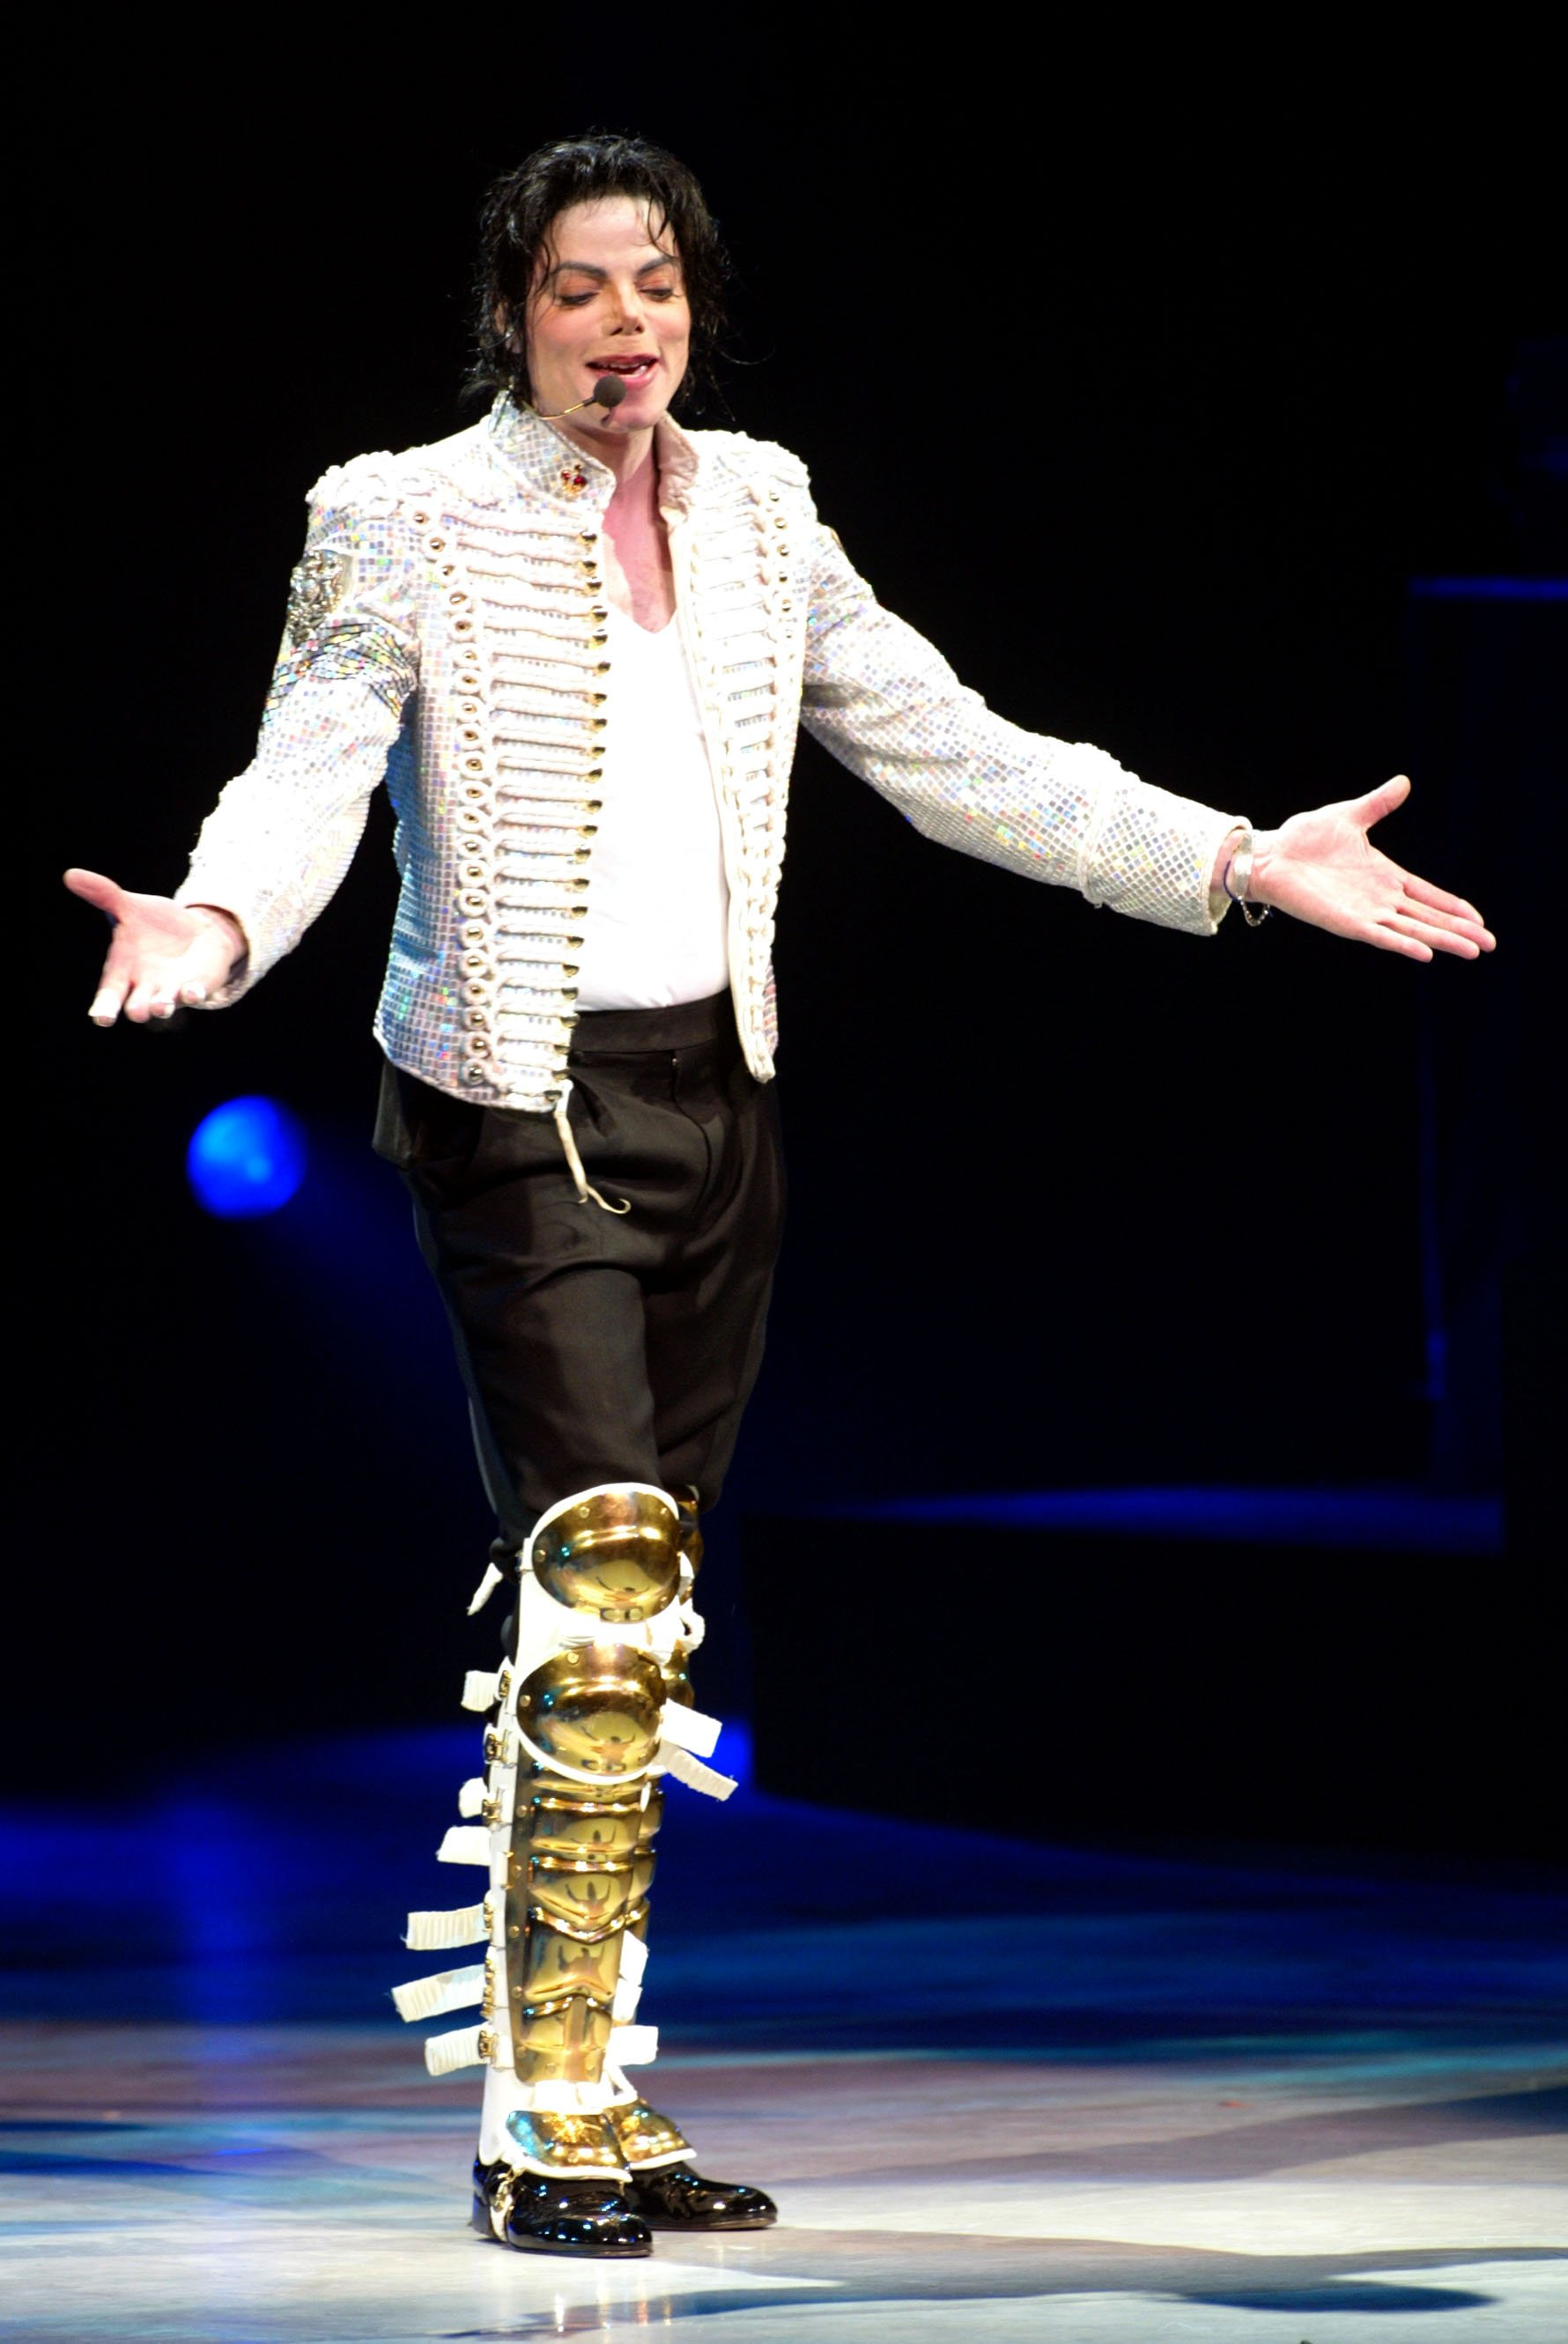 Michael Jackson performing at The Apollo Theater in New York City on April 24, 2002   Photo: Getty Images